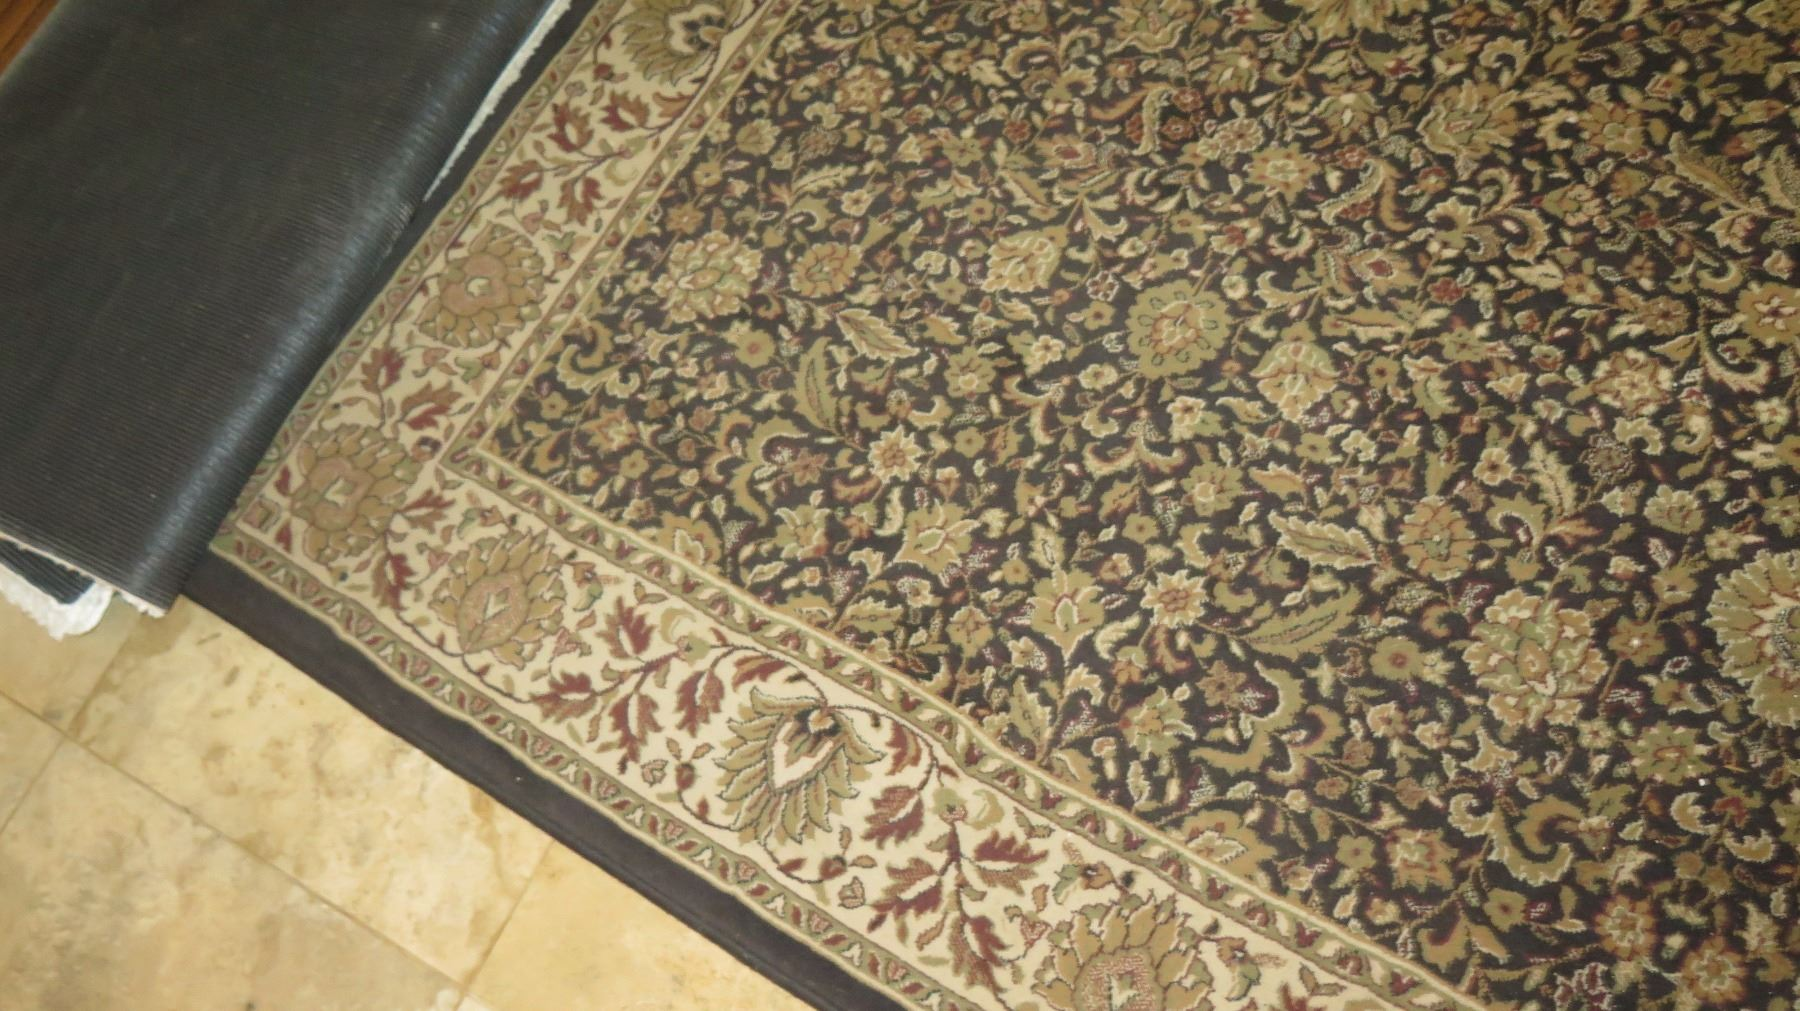 Large Area Rug Black Beige Brown Blue Border 8 X 11 Made In Egypt Oriental Weavers Oahu Auctions